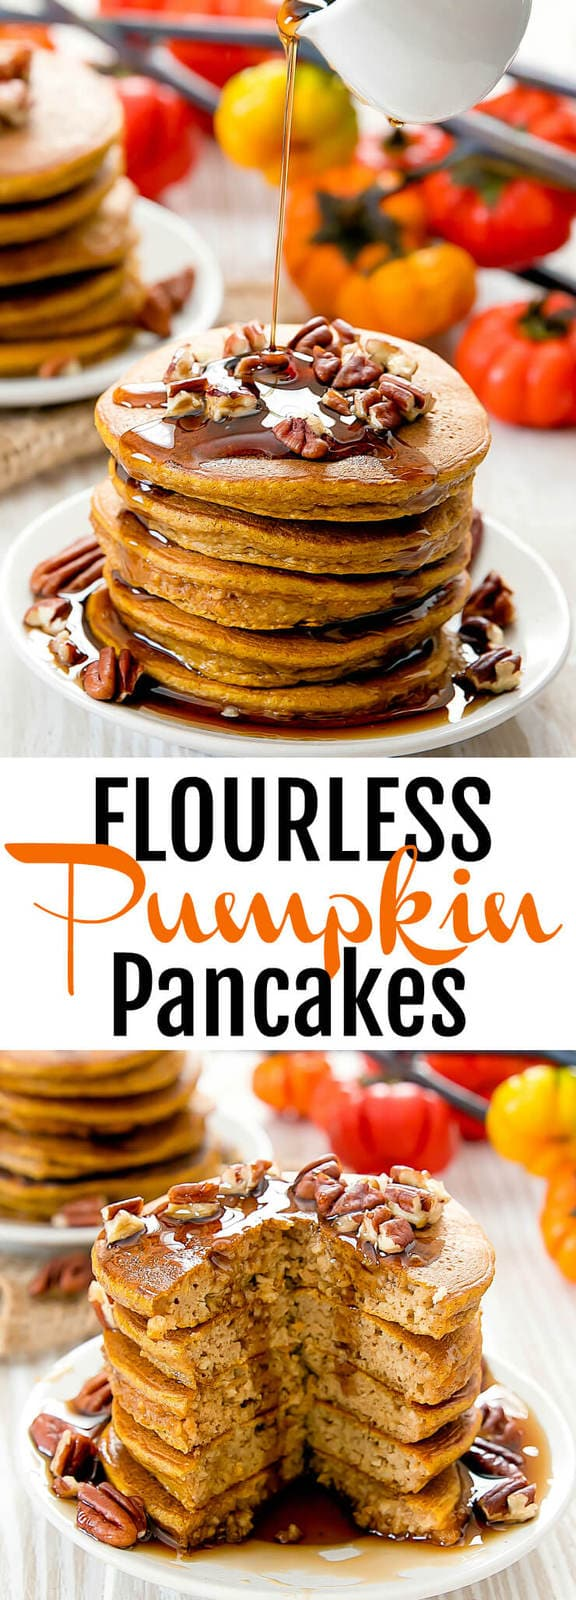 Flourless Pumpkin Pancakes. These fluffy pancakes are gluten free, easy and contain no wheat flour.